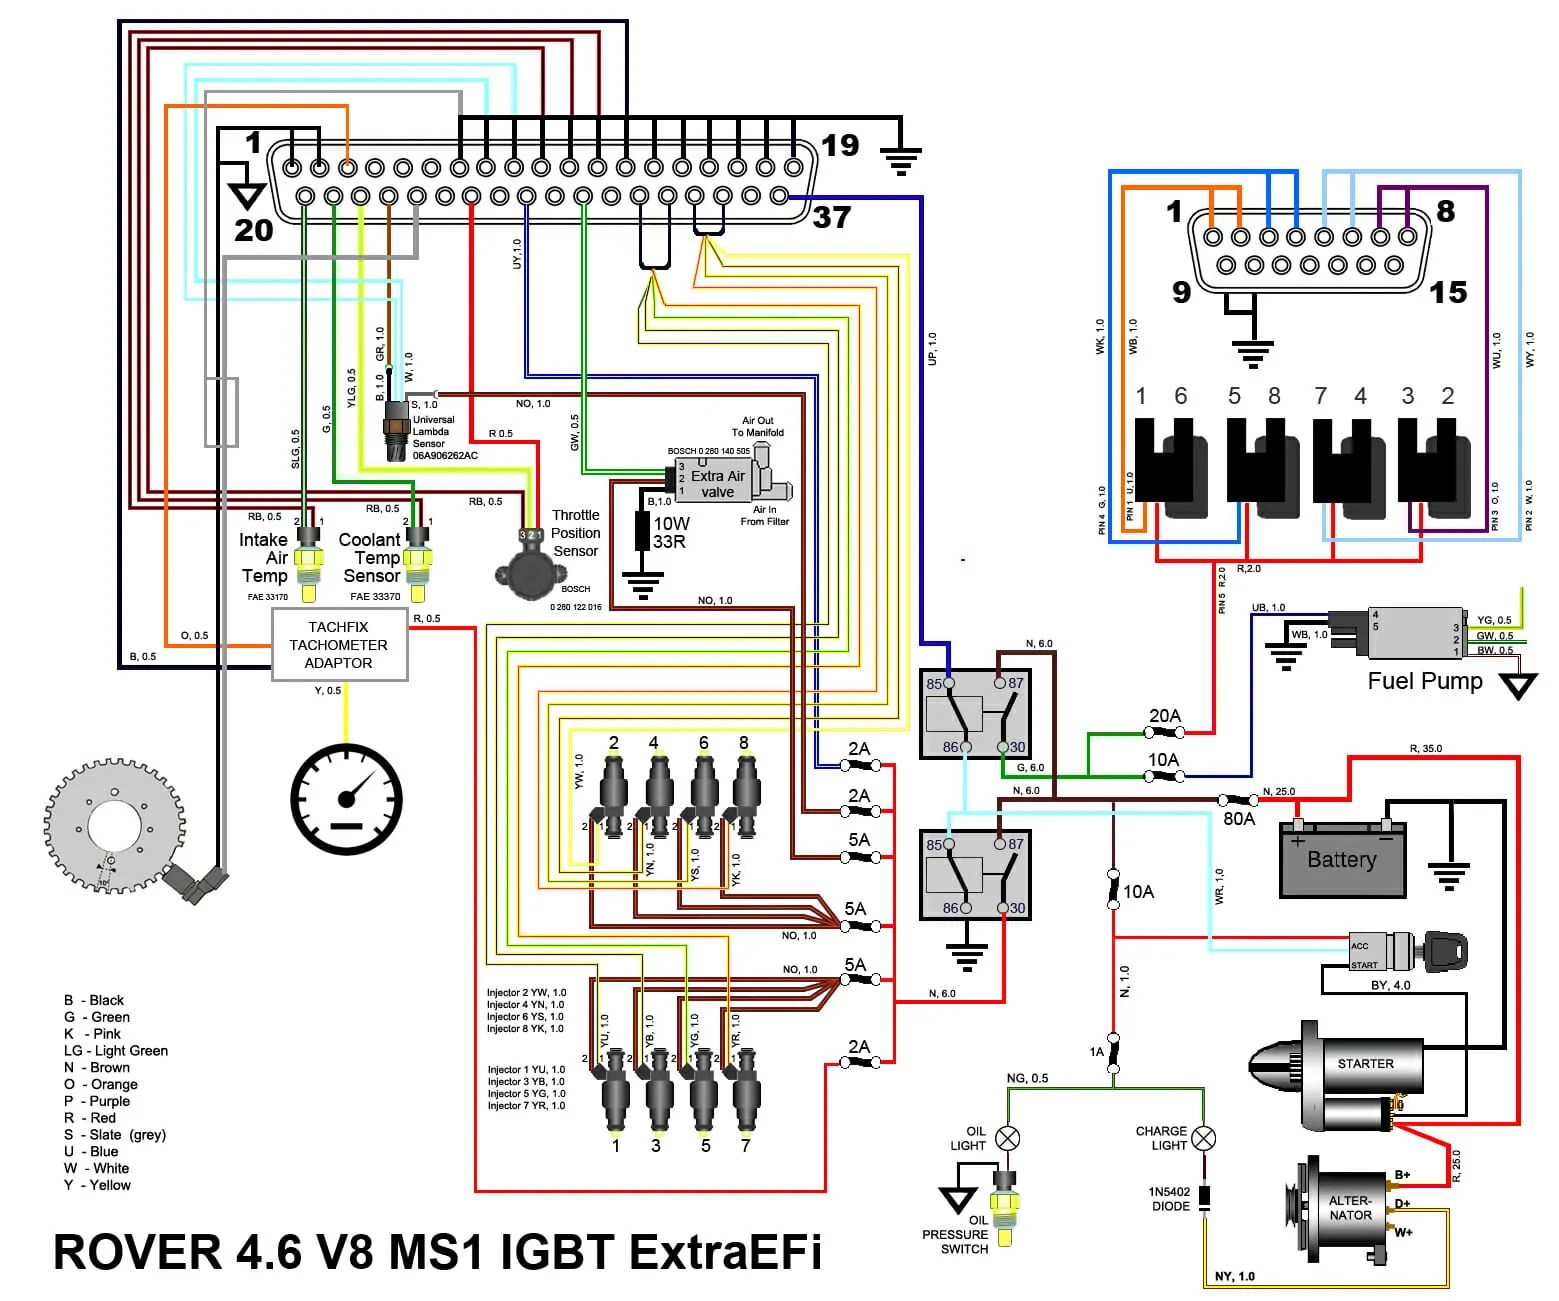 hight resolution of 1997 land rover discovery fuse diagram wiring library1997 land rover discovery fuse diagram 3